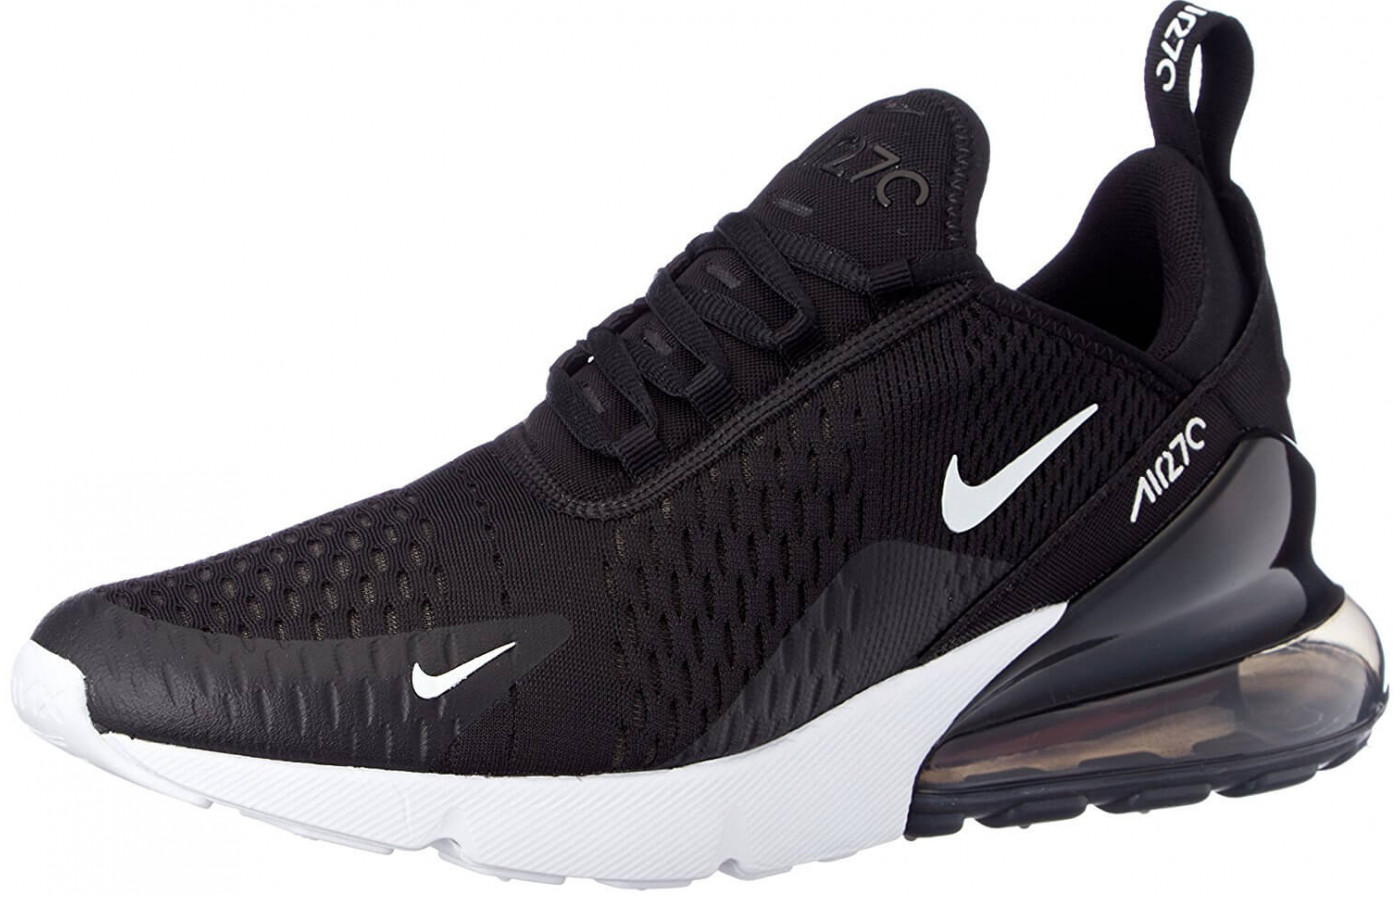 058eace311 Nike Air Max 270 Reviewed - To Buy or Not in June 2019?